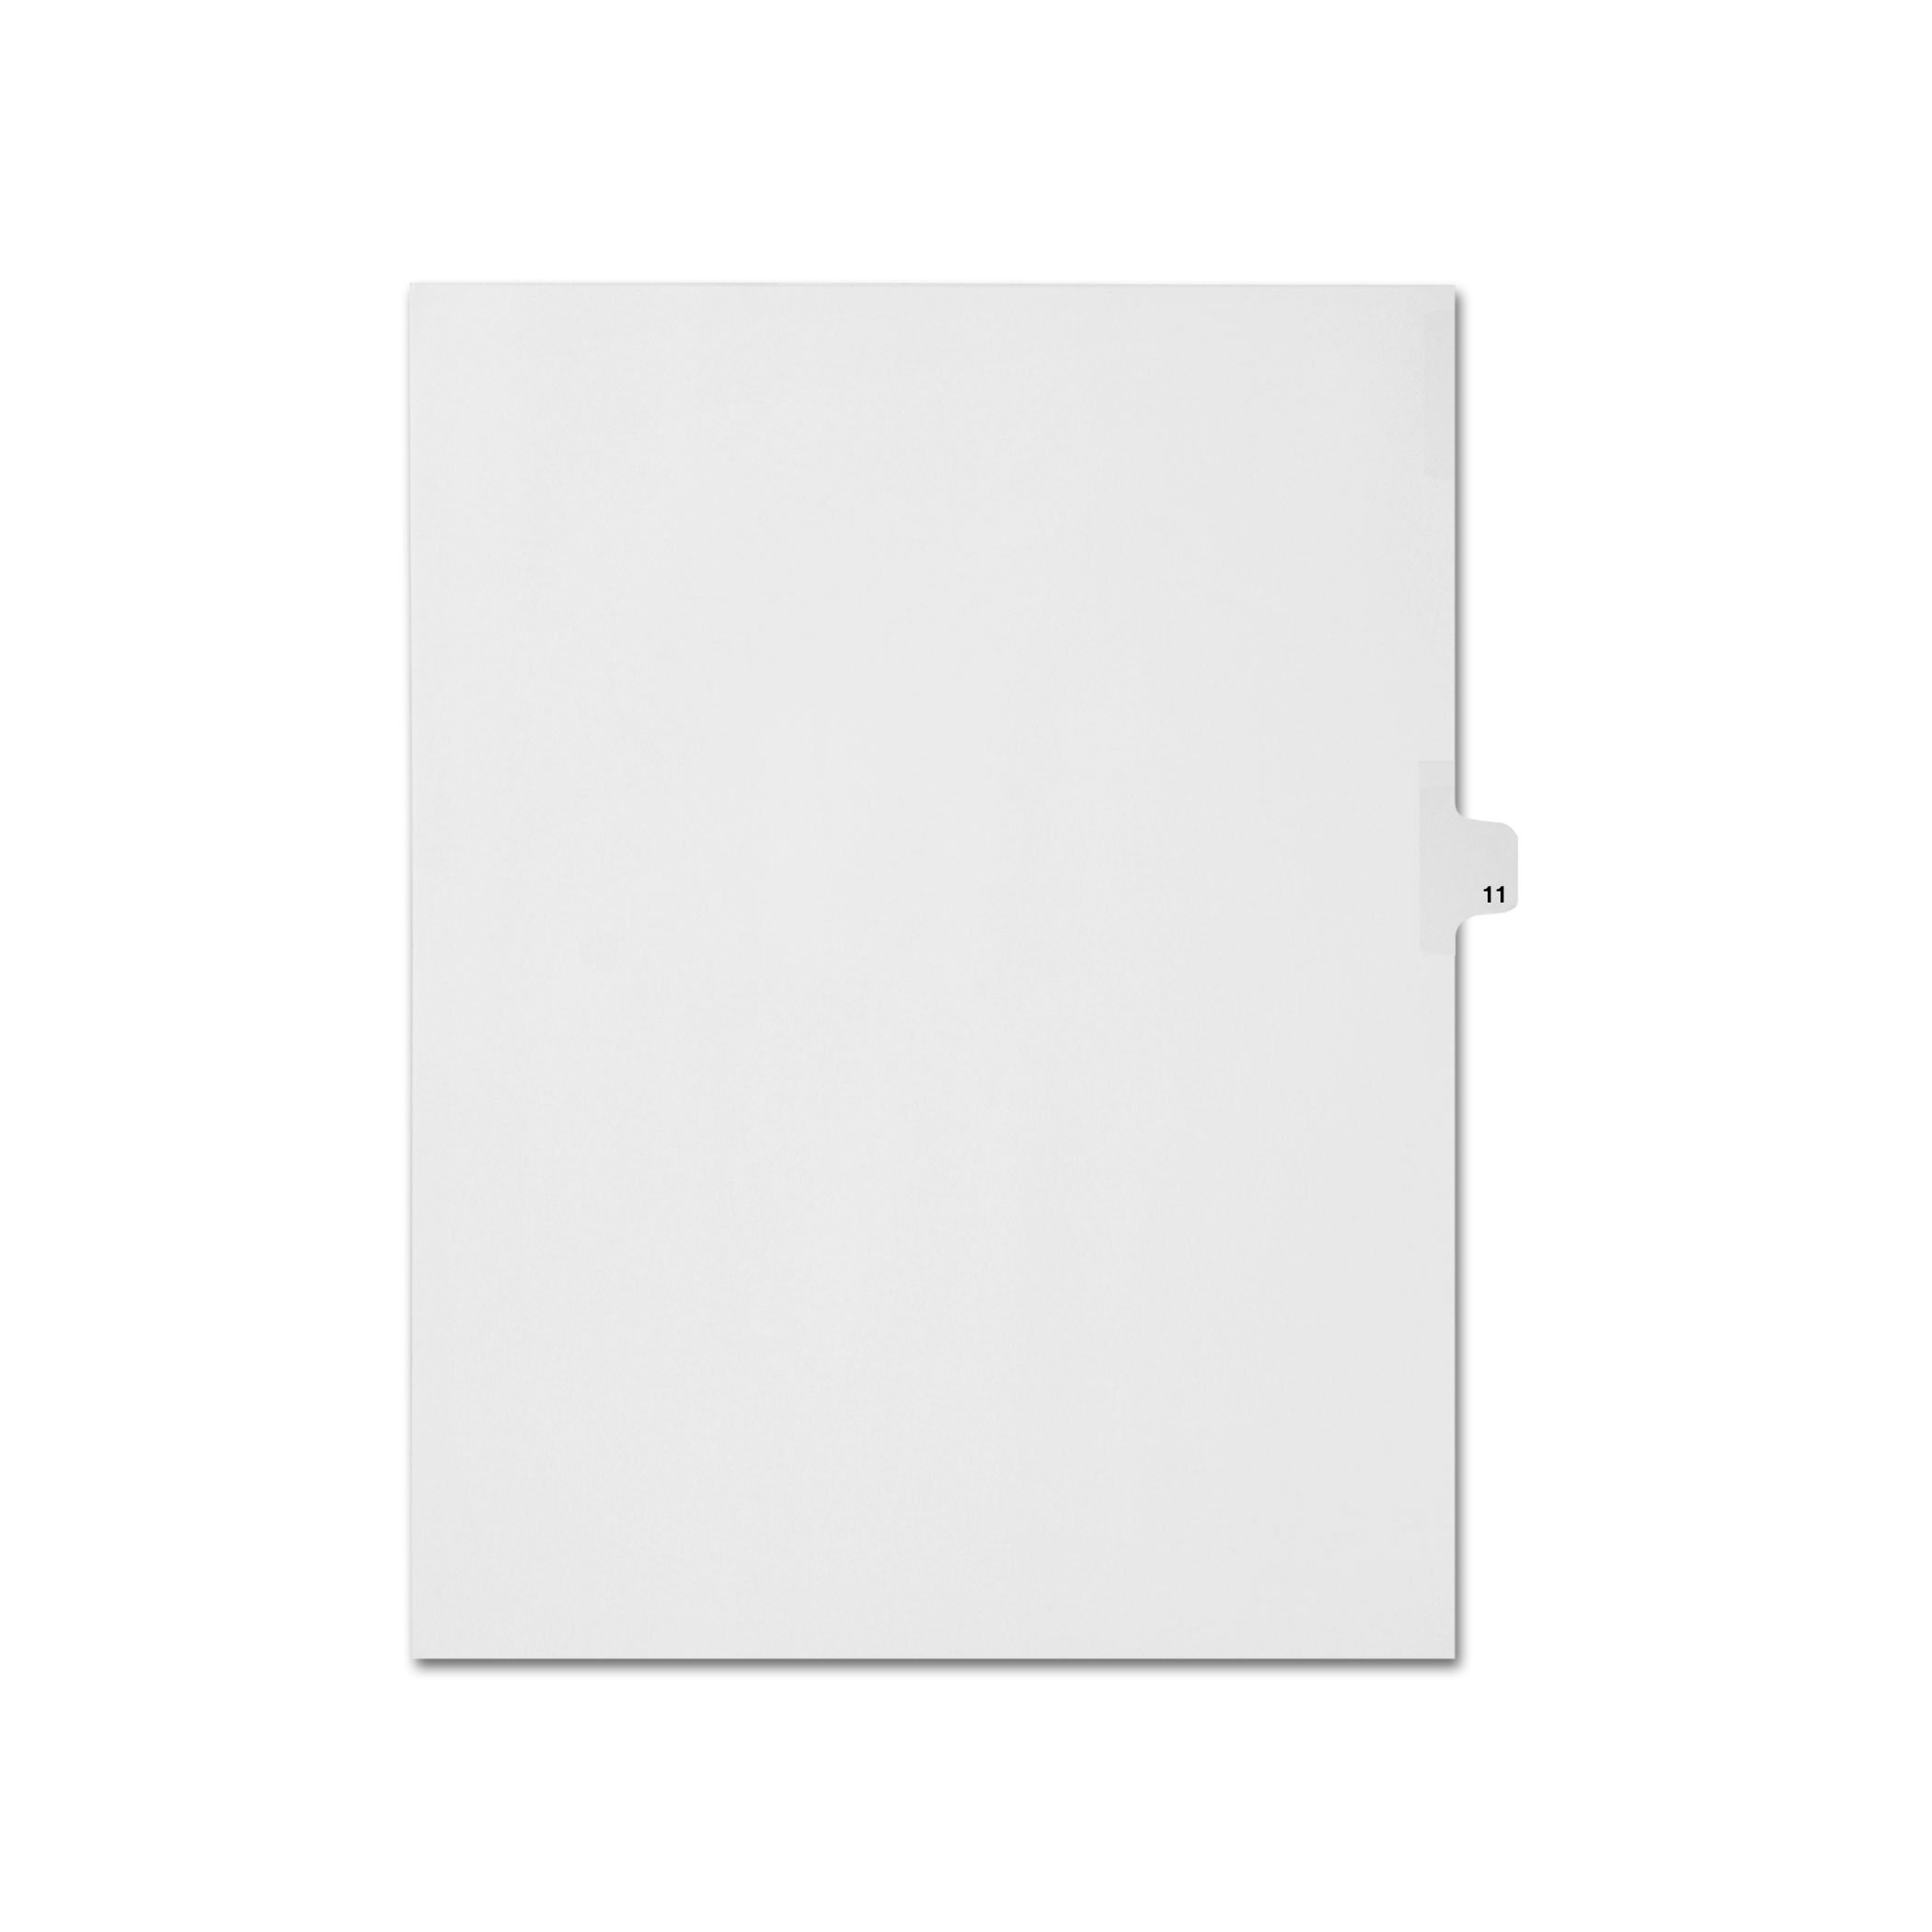 AMZfiling Individual Legal Index Tab Dividers, Compatible with Avery- Number 11, Letter Size, White, Side Tabs, Position 11 (25 Sheets/pkg)